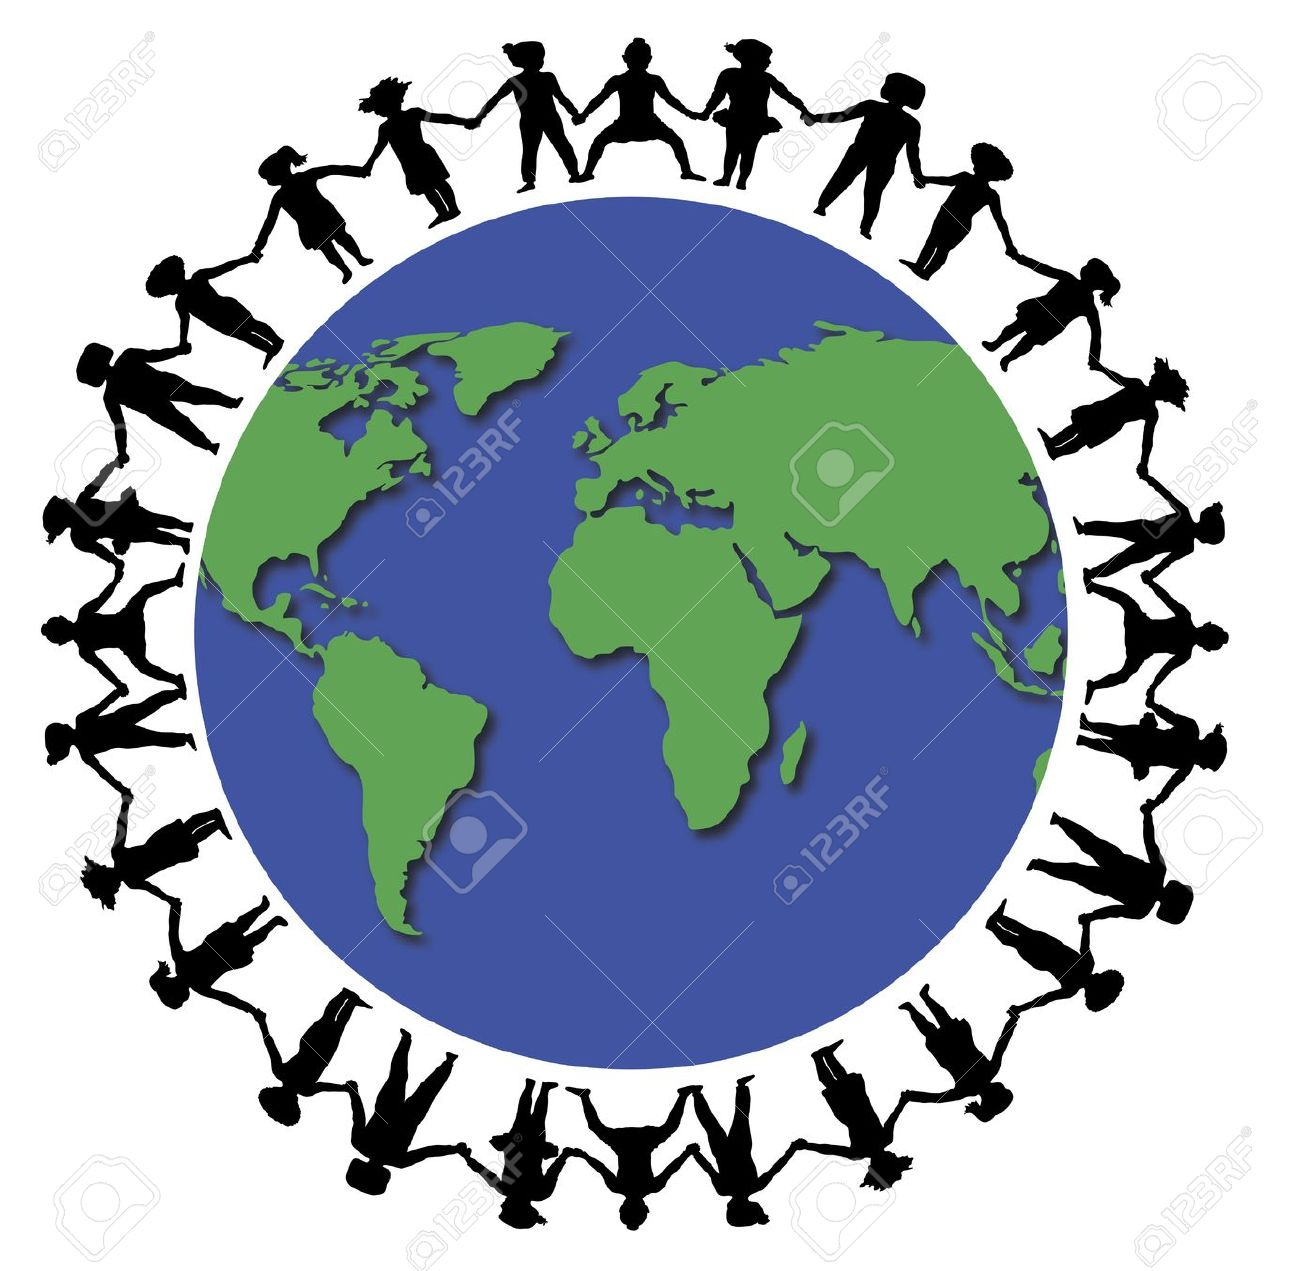 clipart hands holding world Clipground